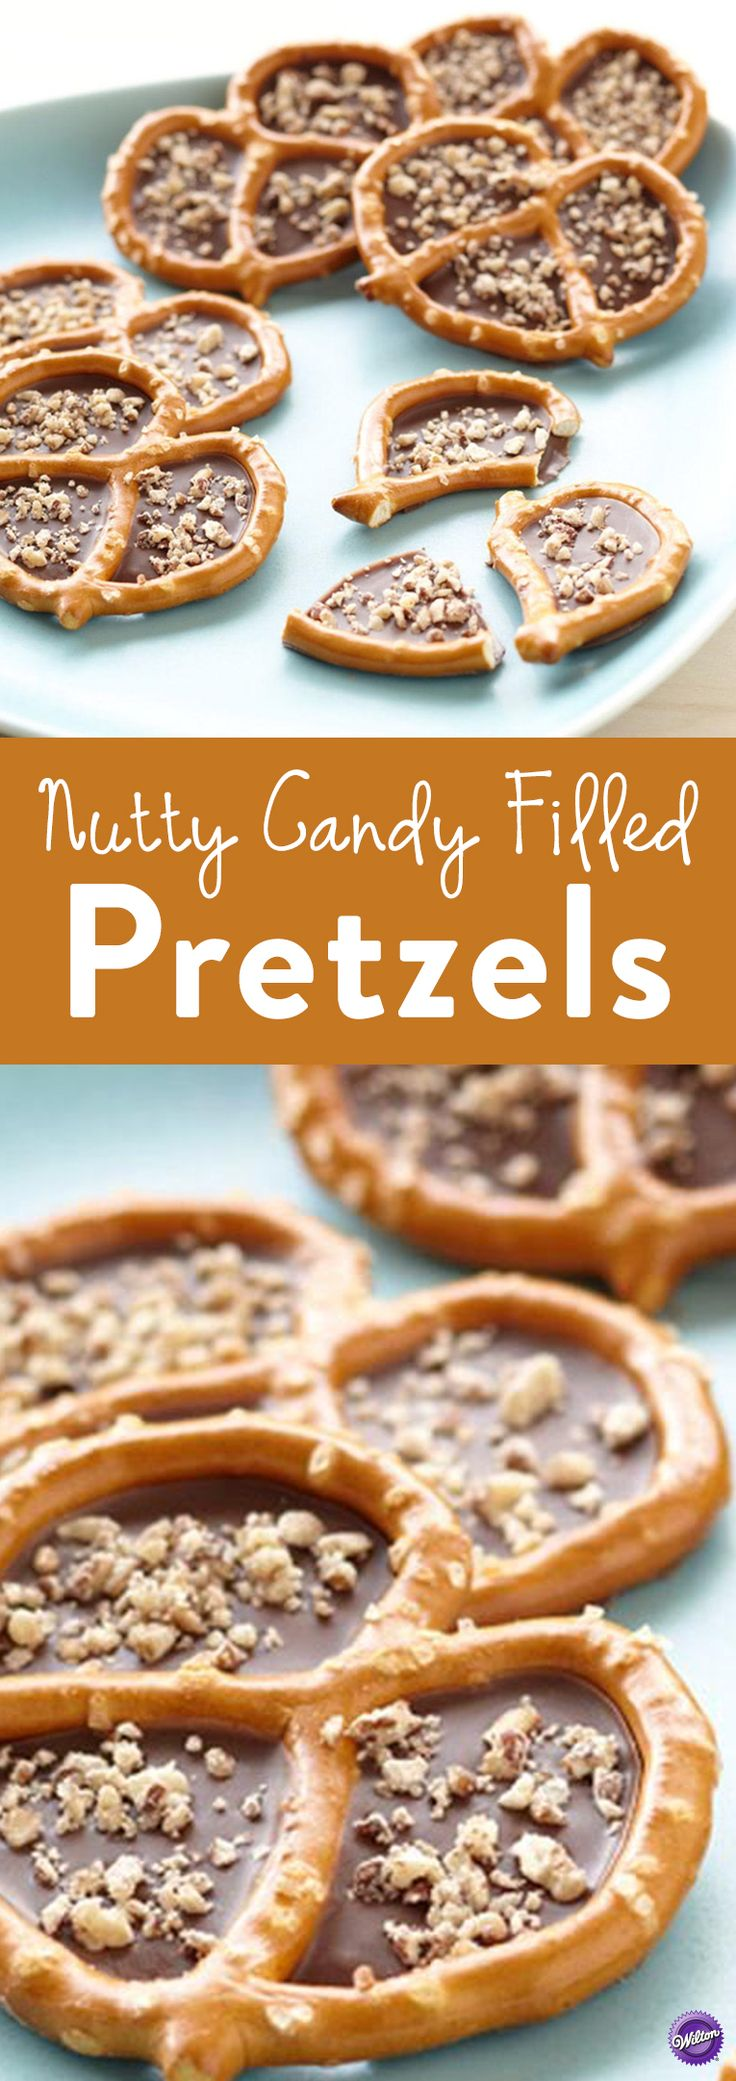 How to Make Nutty Candy Filled Pretzels - Regular pretzels will never be the same once you fill them with Wilton Candy Melts candy and add a sprinkle of chopped nuts. This combination of sweet and salty is fun to make and serve any time of the year and your guests will devour them!